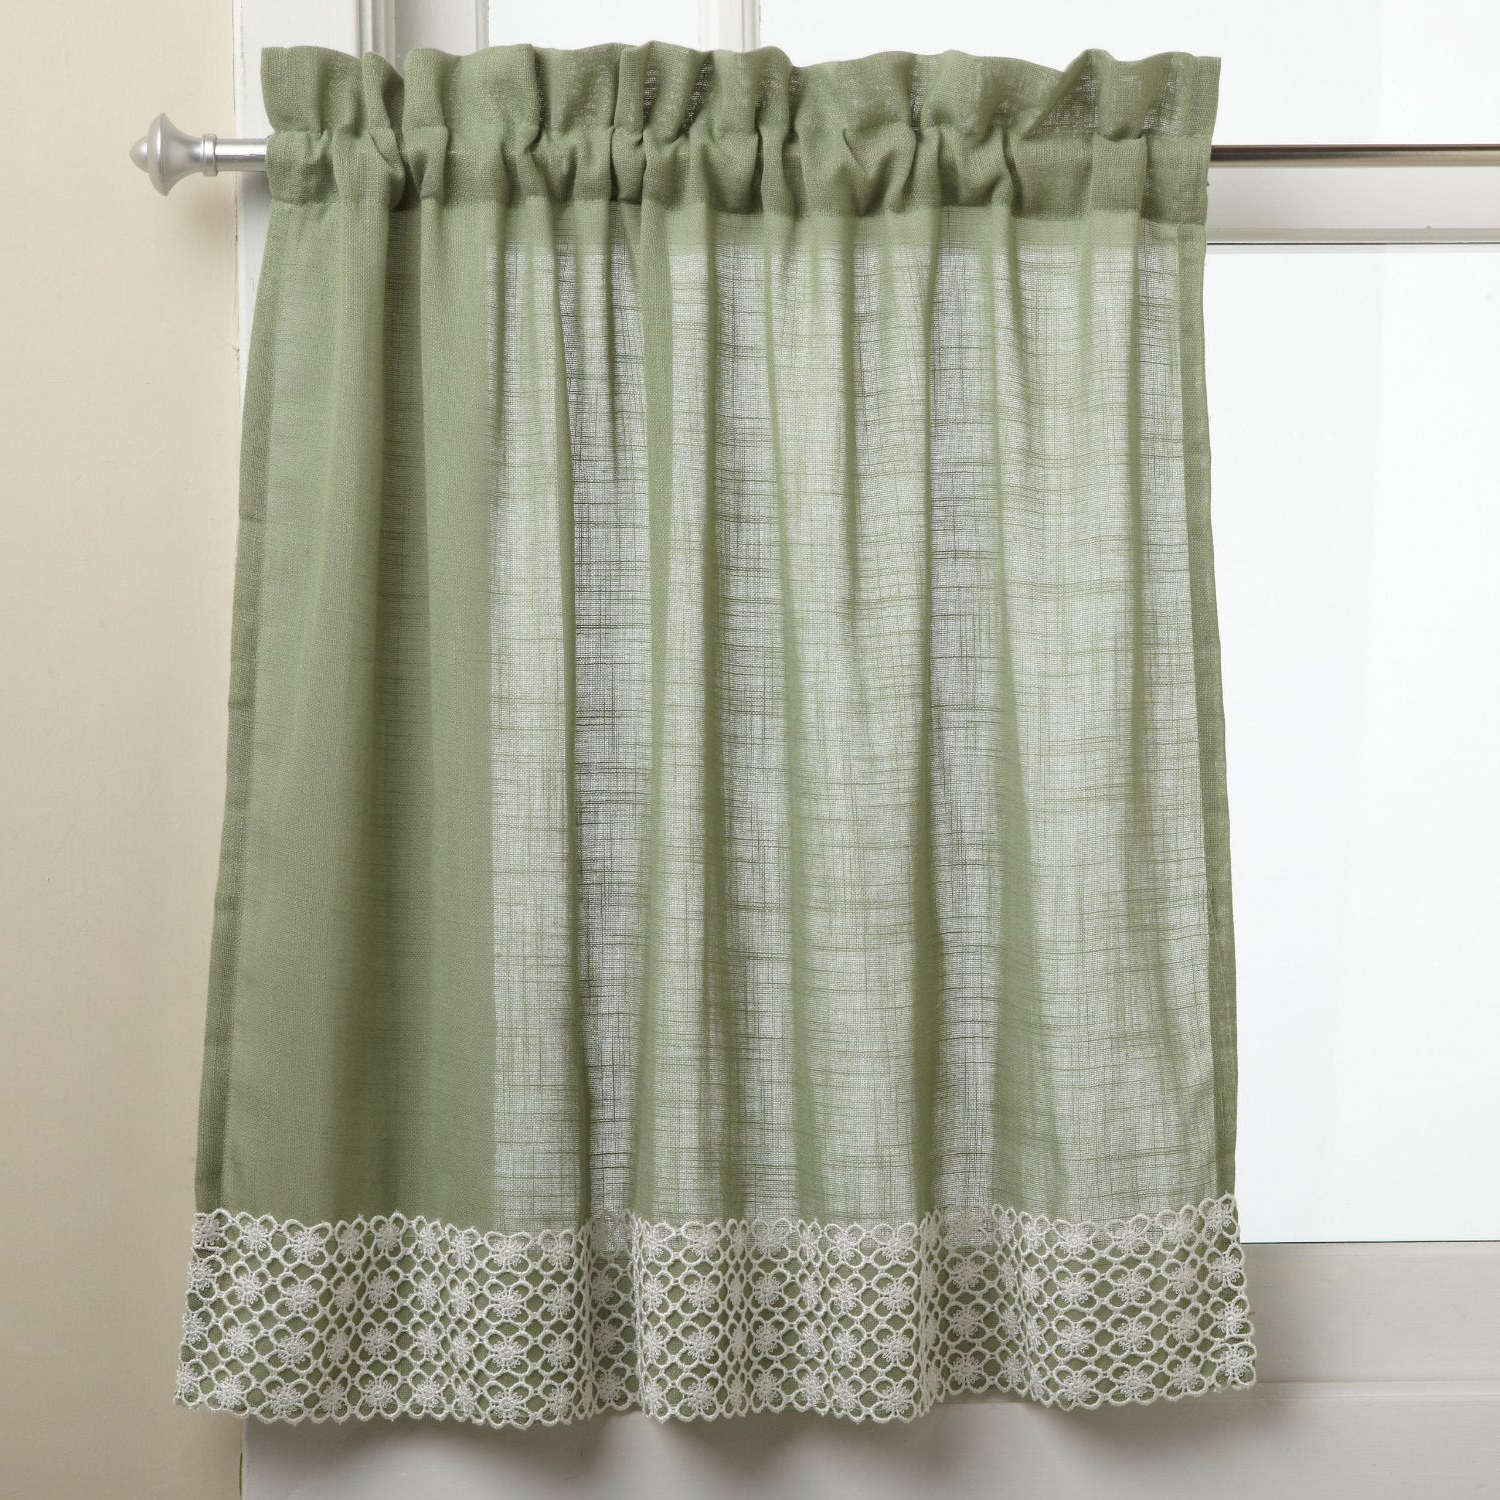 Current French Vanilla Country Style Curtain Parts With White Daisy Lace Accent With Regard To Sage Country Style Curtain Parts With White Daisy Lace Accent  (Separates Tiers, Swags And Valances) (View 4 of 20)